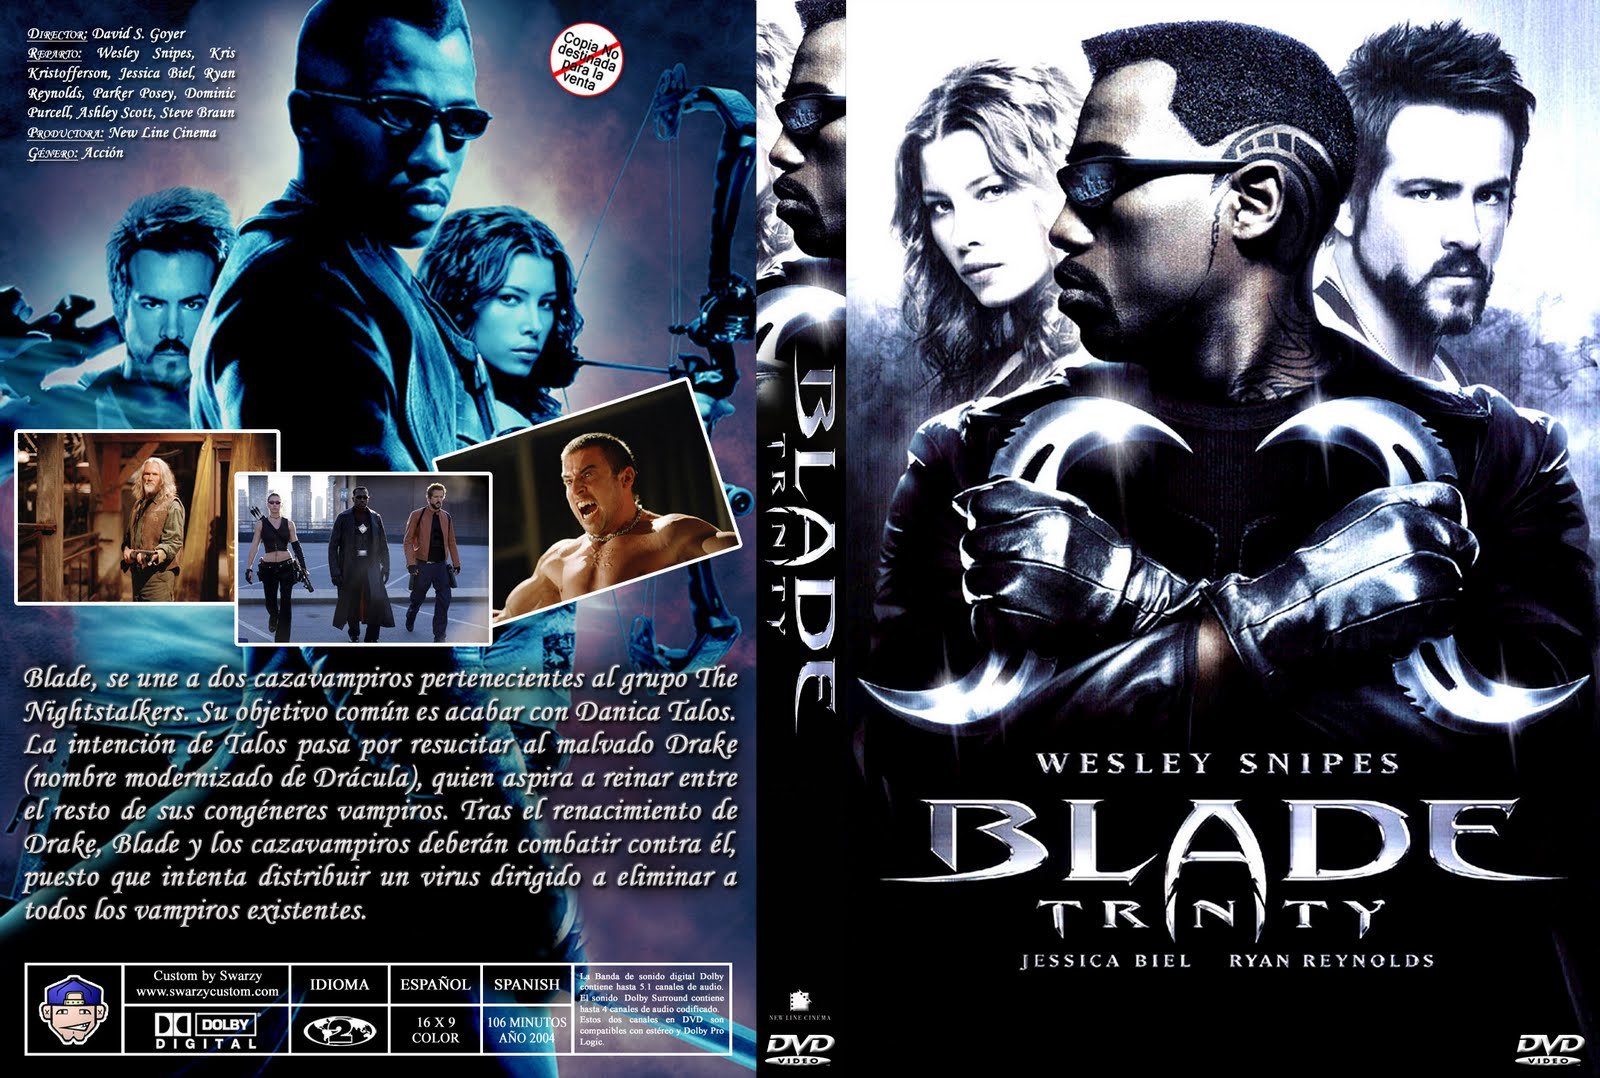 blade 3 full movie in hindi download hd